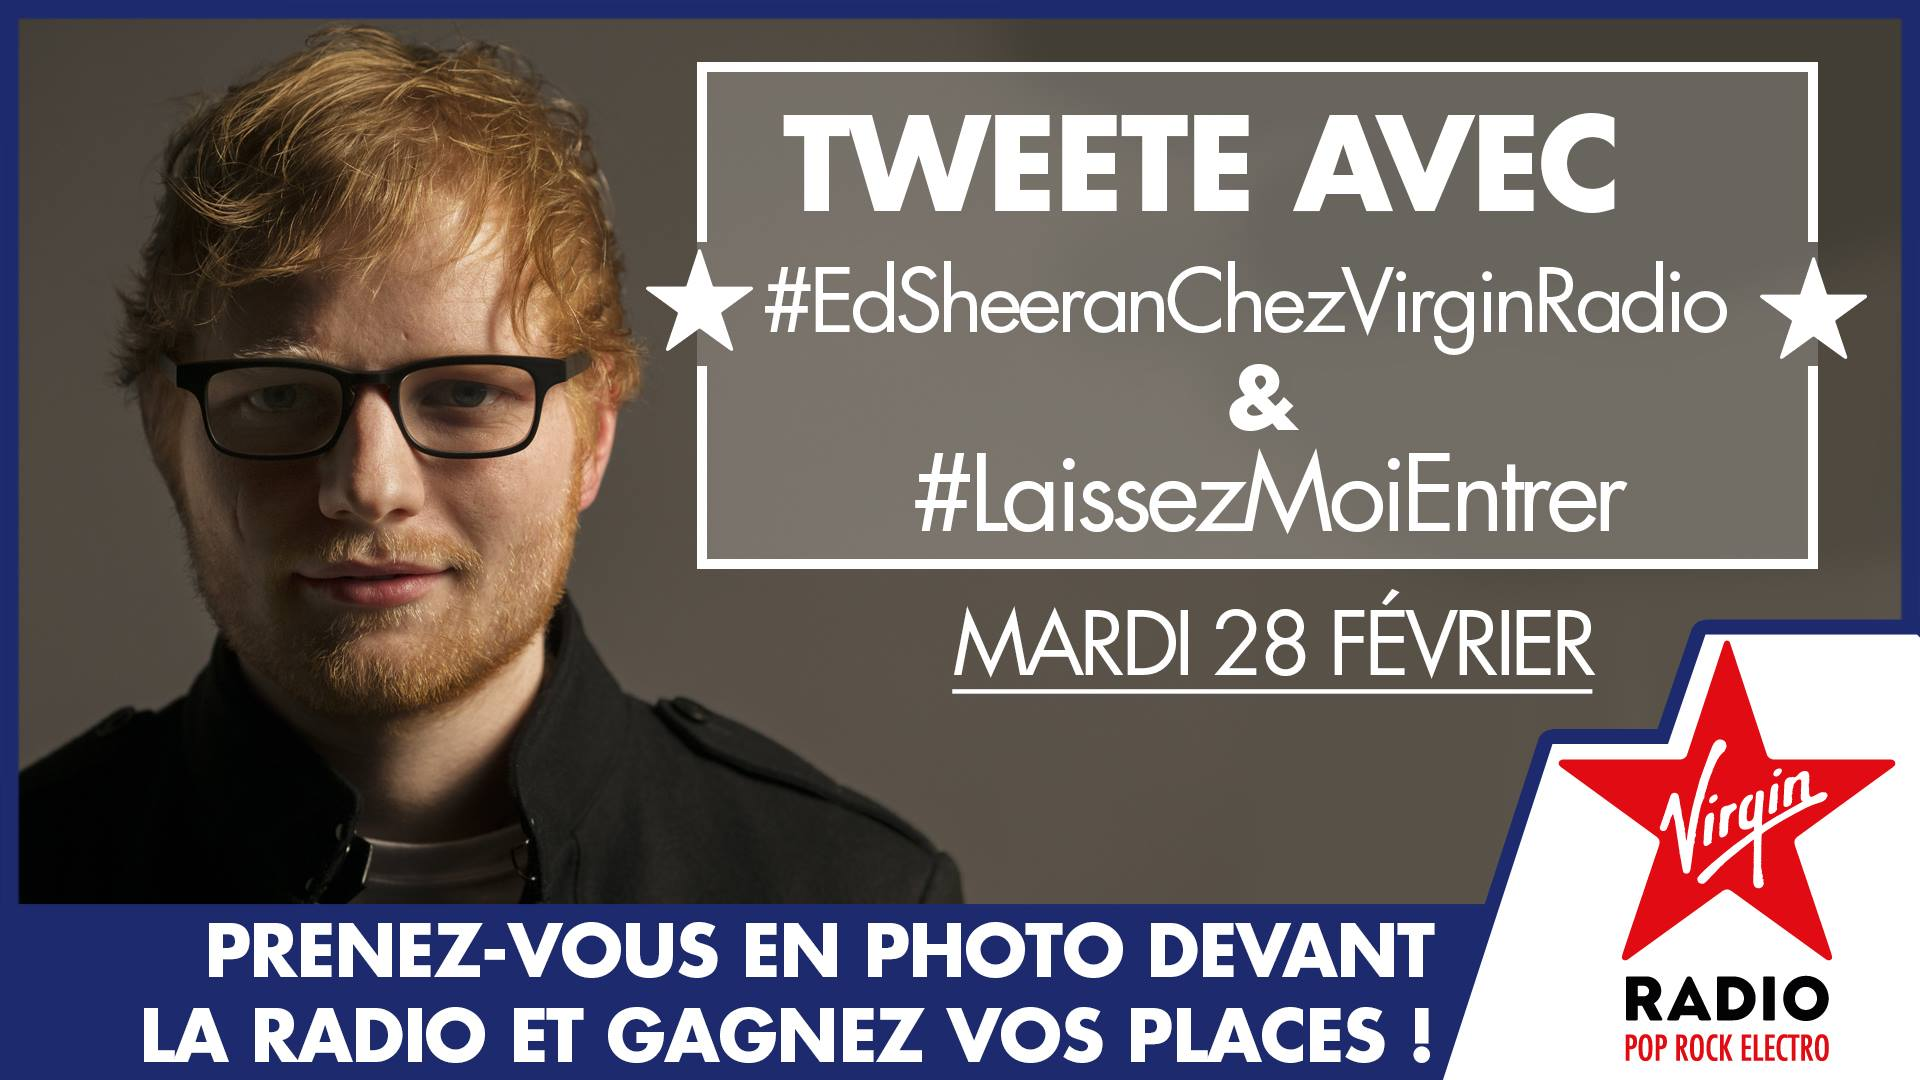 Ed Sheeran Virgin Radio JustMusic.fr